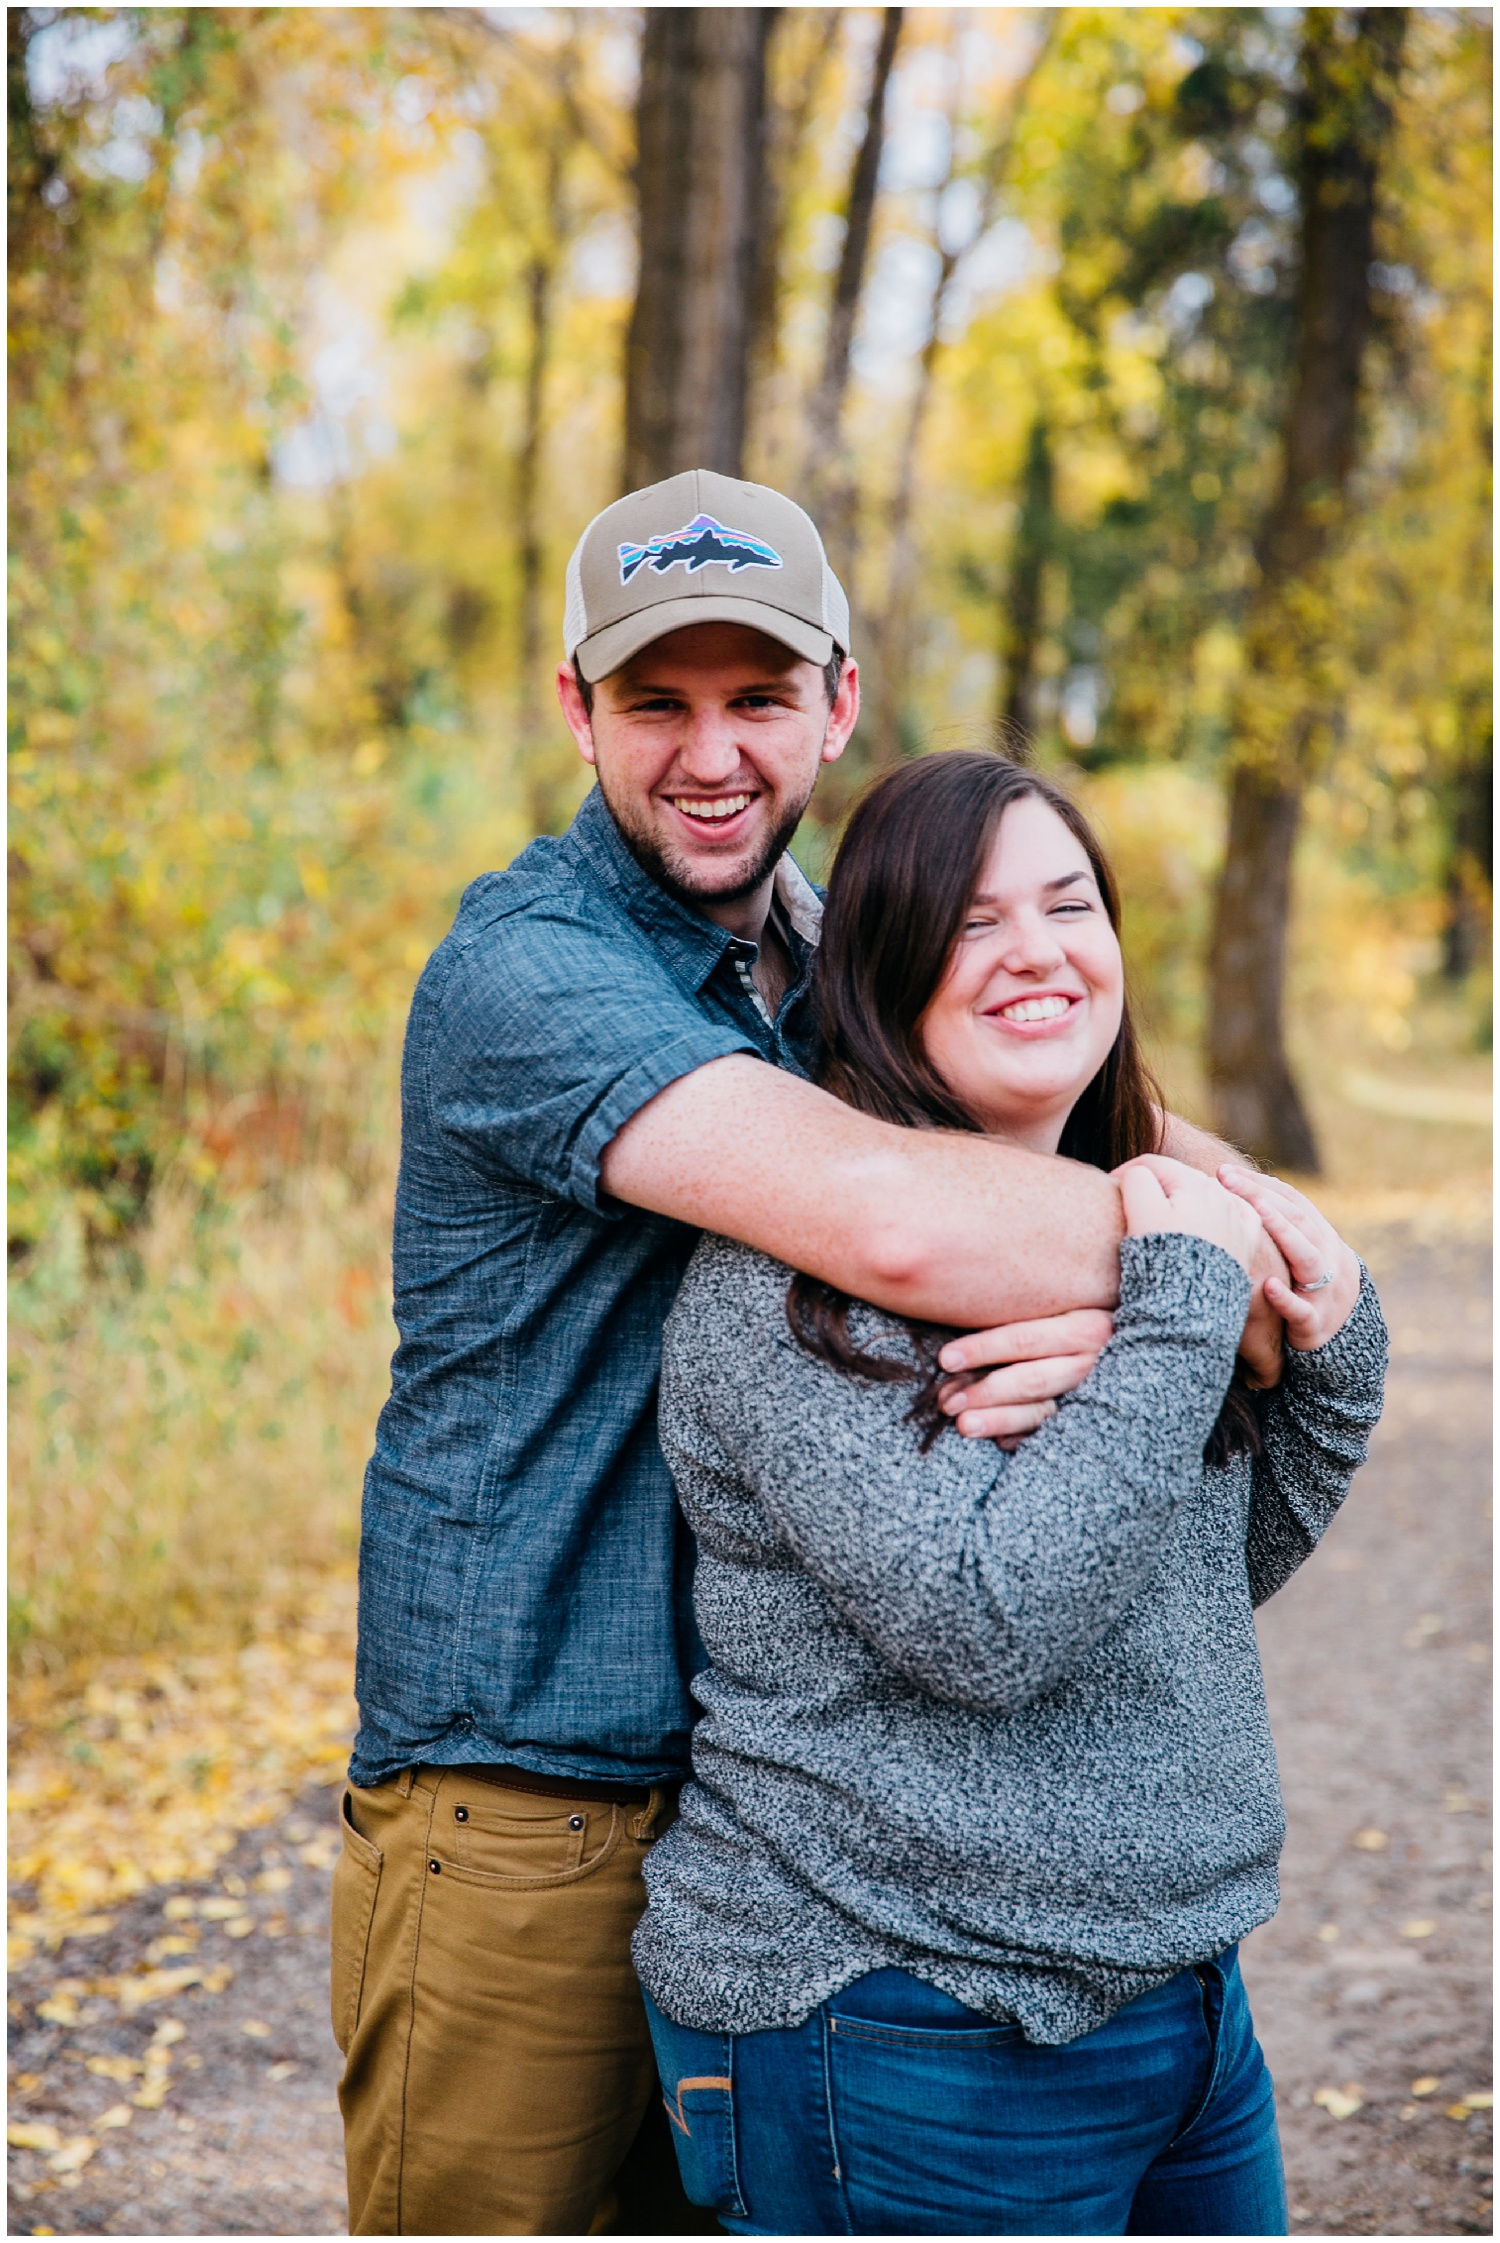 idaho-adventure-wedding-photographer-idaho-falls-rigby-rexburg-engagements_1611.jpg